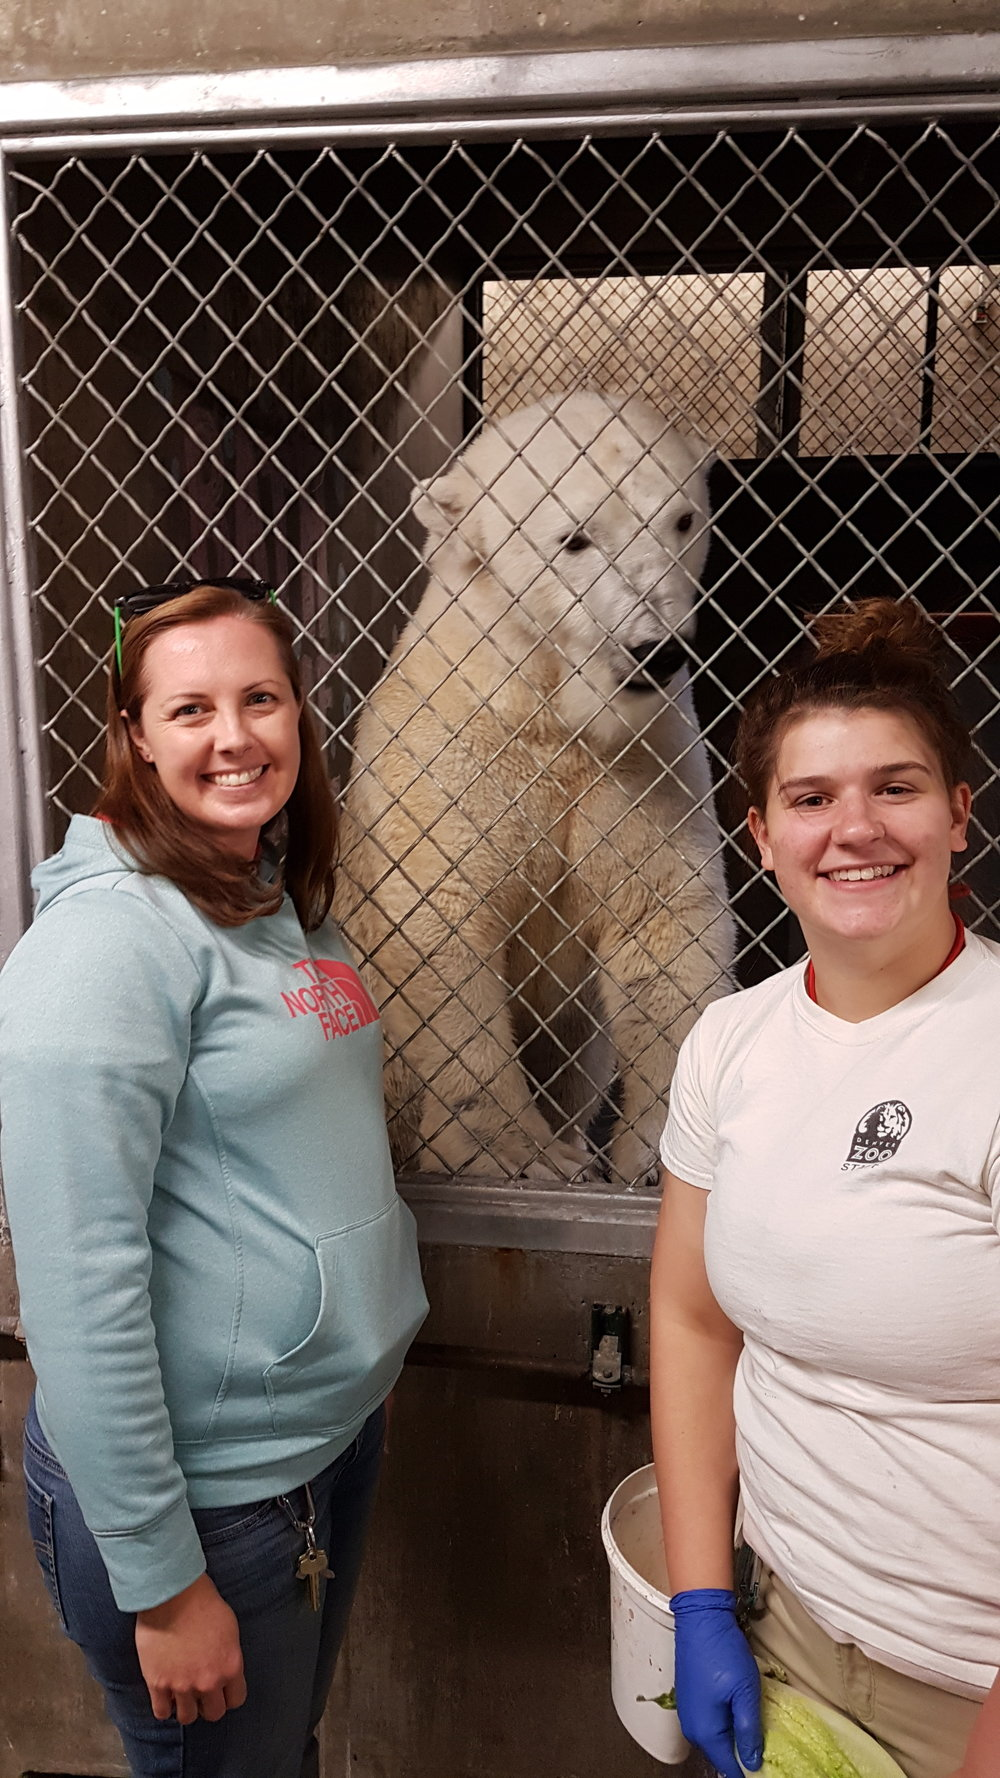 Meryt and Abby, two of Cranbeary's zookeepers at the Denver Zoo.